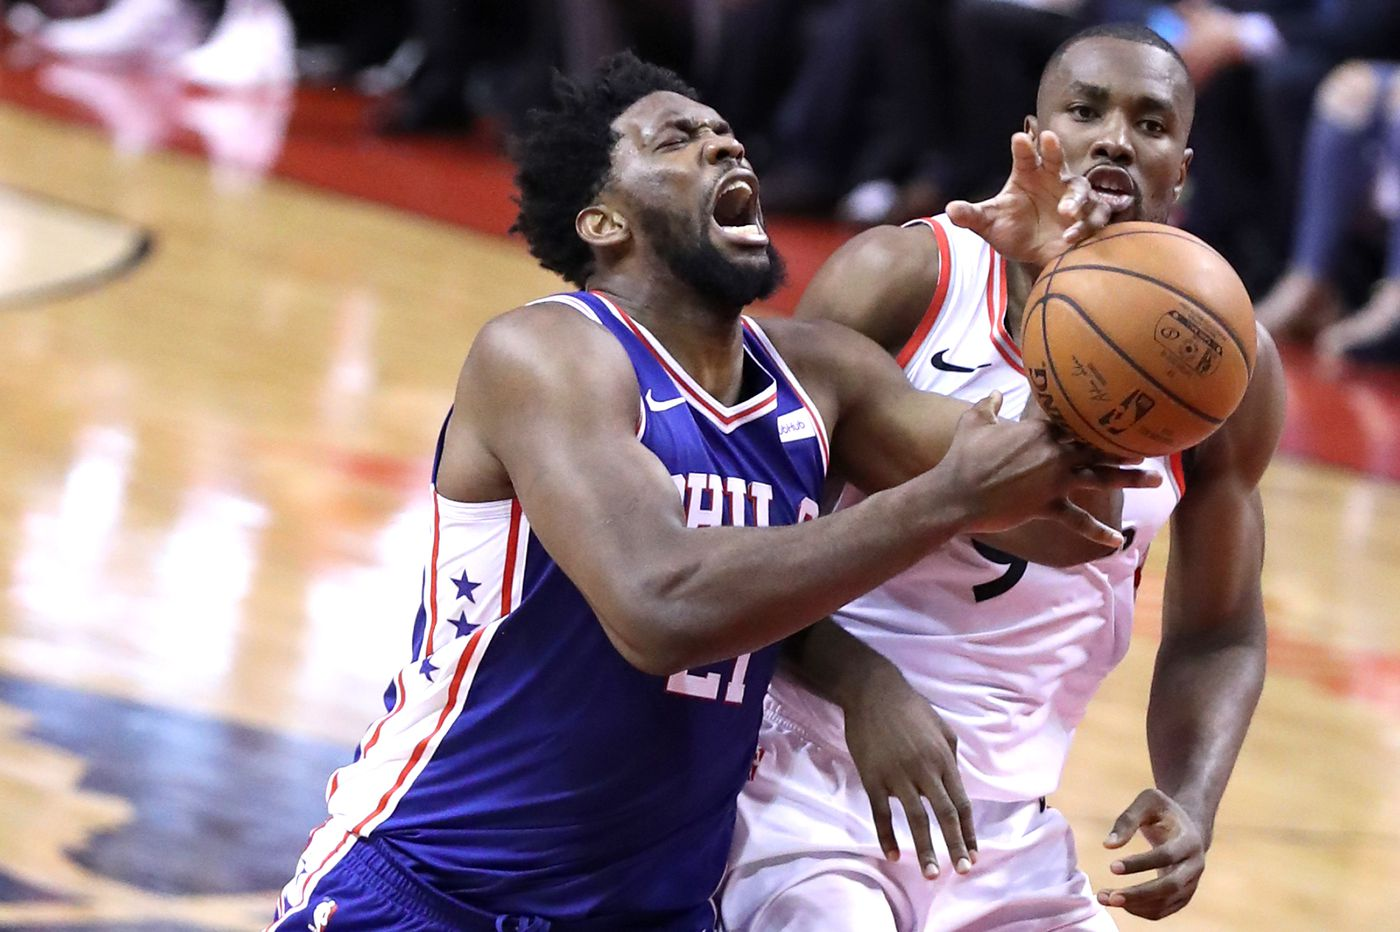 NBA playoffs 2019: 76ers pull away from Raptors in Game 3